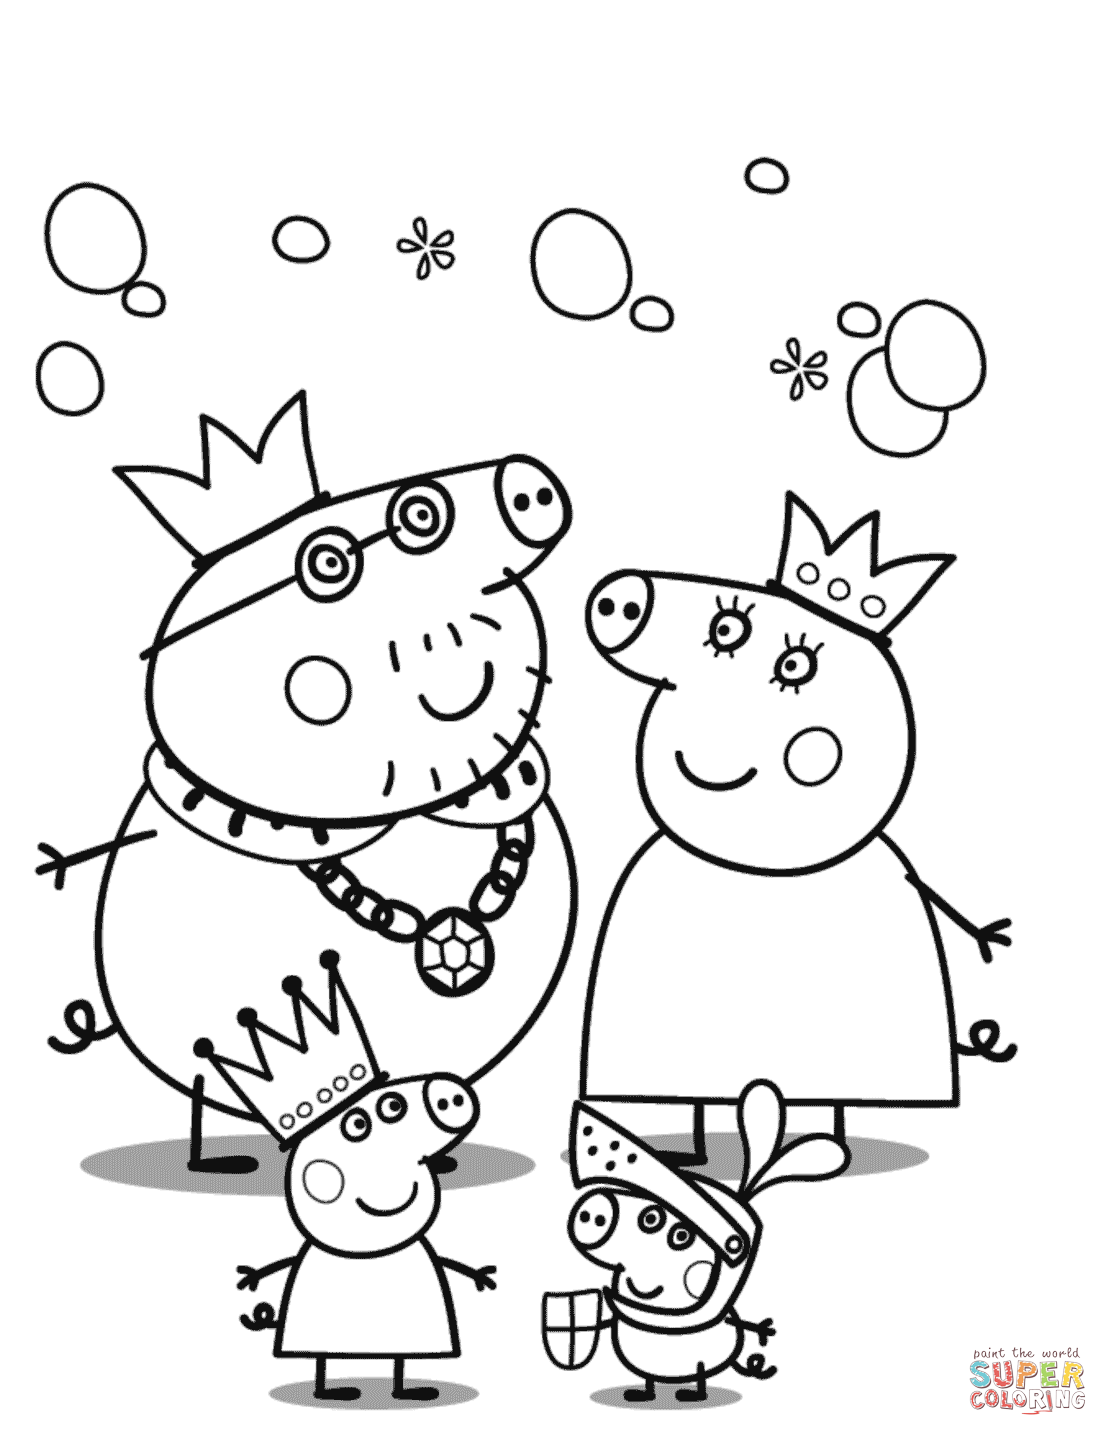 peppa pig pictures for colouring free peppa pig coloring pages to print 101 coloring pig pictures peppa colouring for